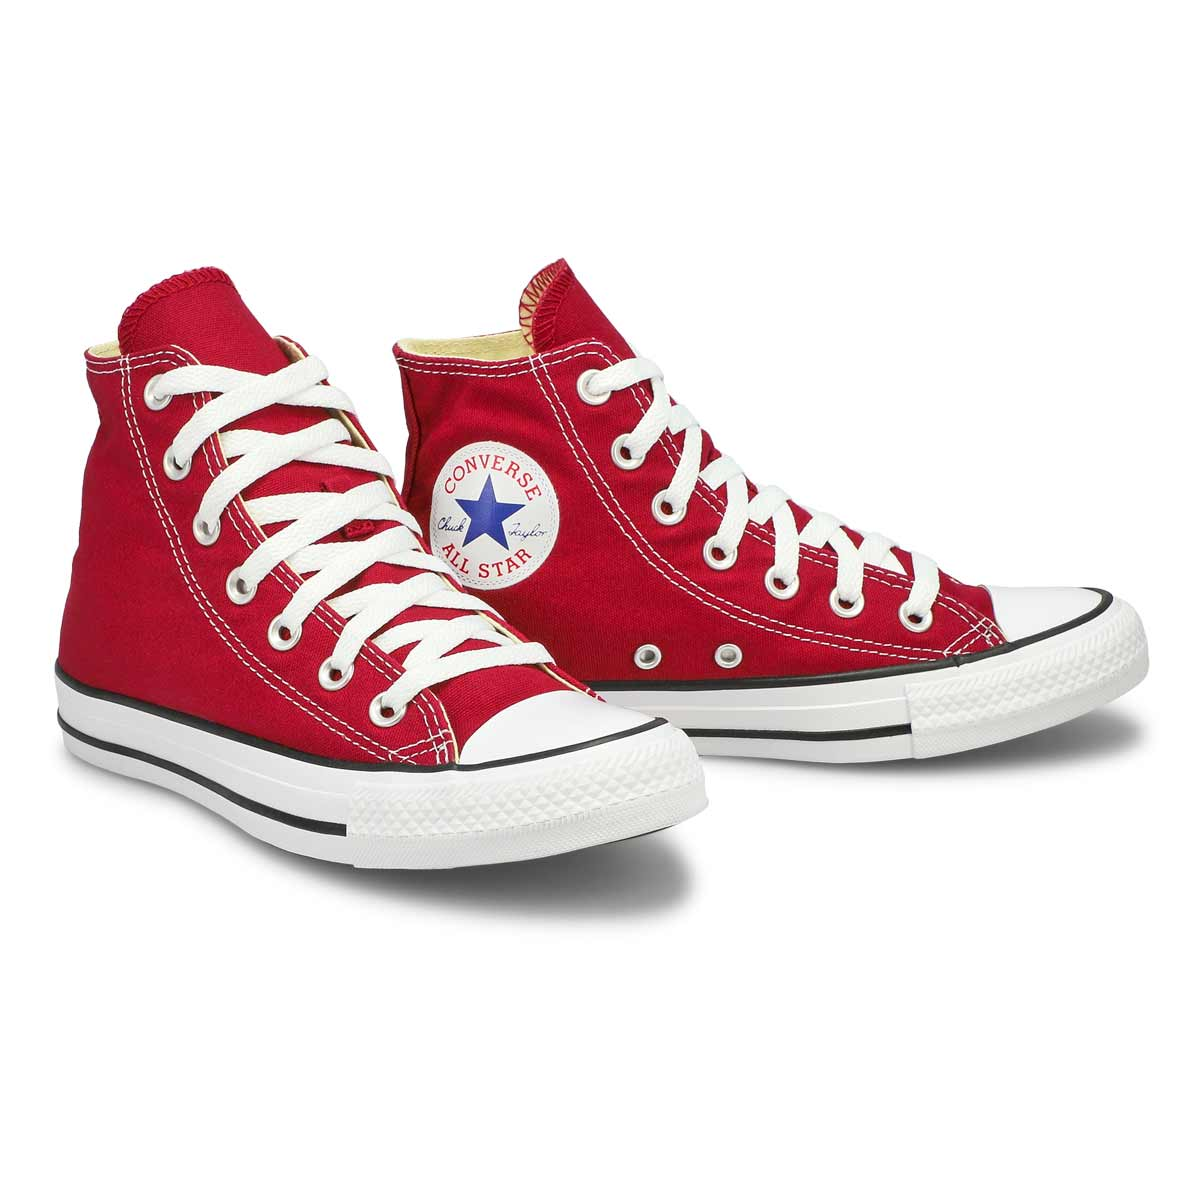 Lds CT All Star Core Hi maroon cnvs snkr